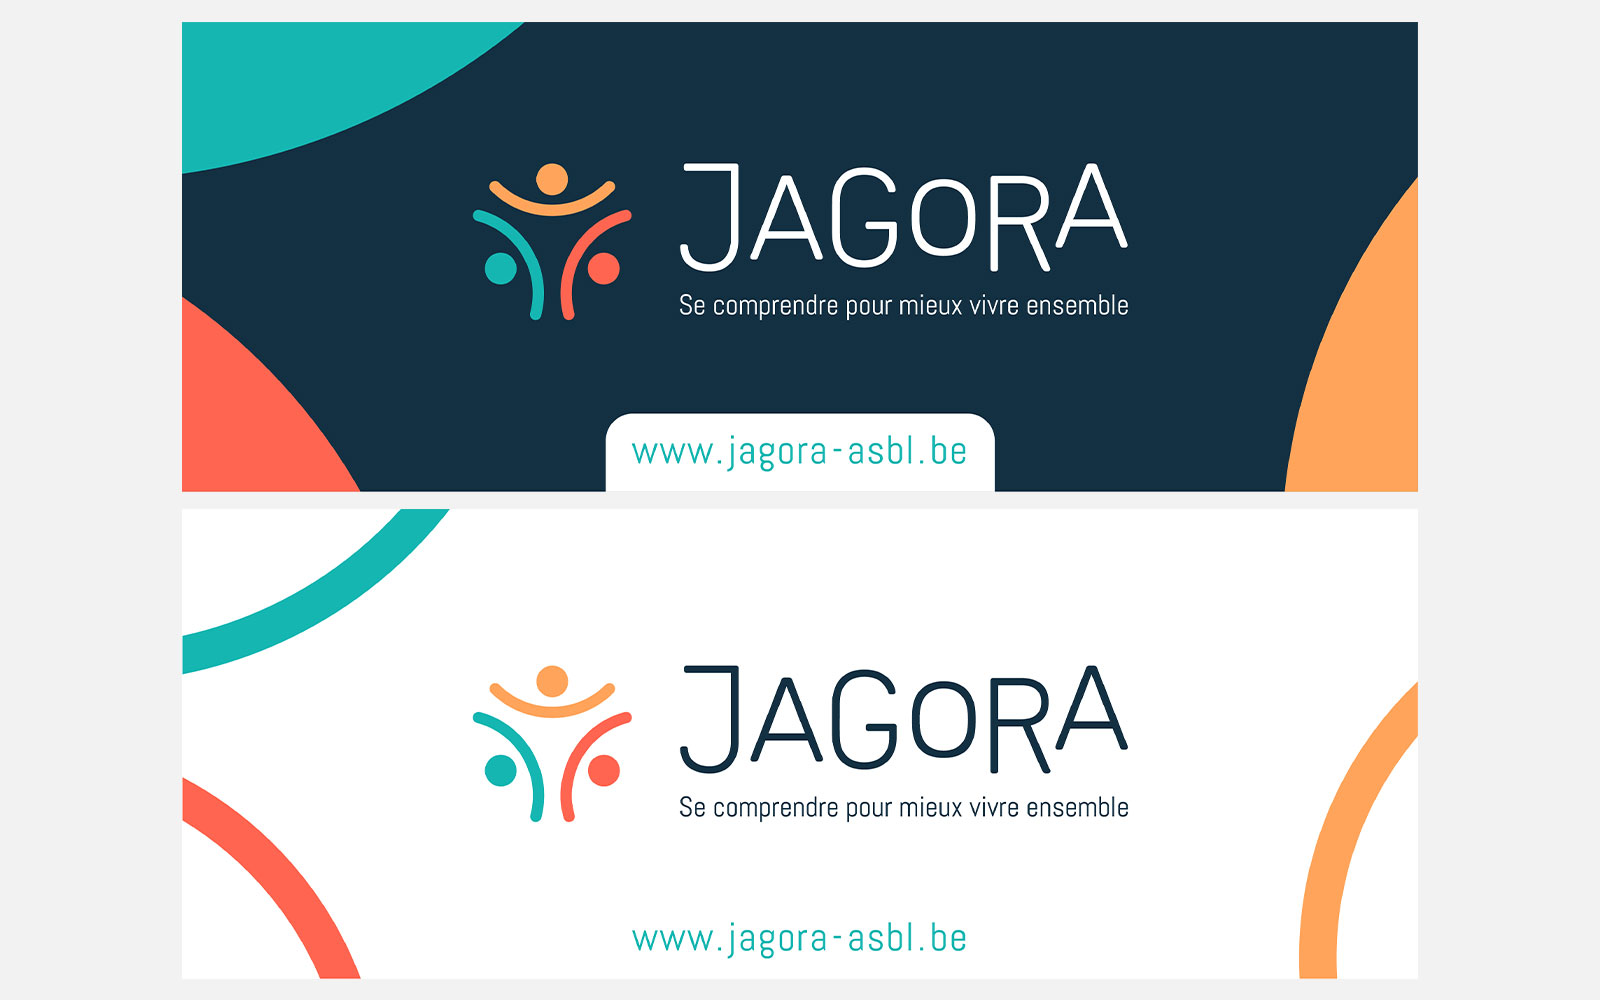 bl-graphics - jagora - couverture facebook